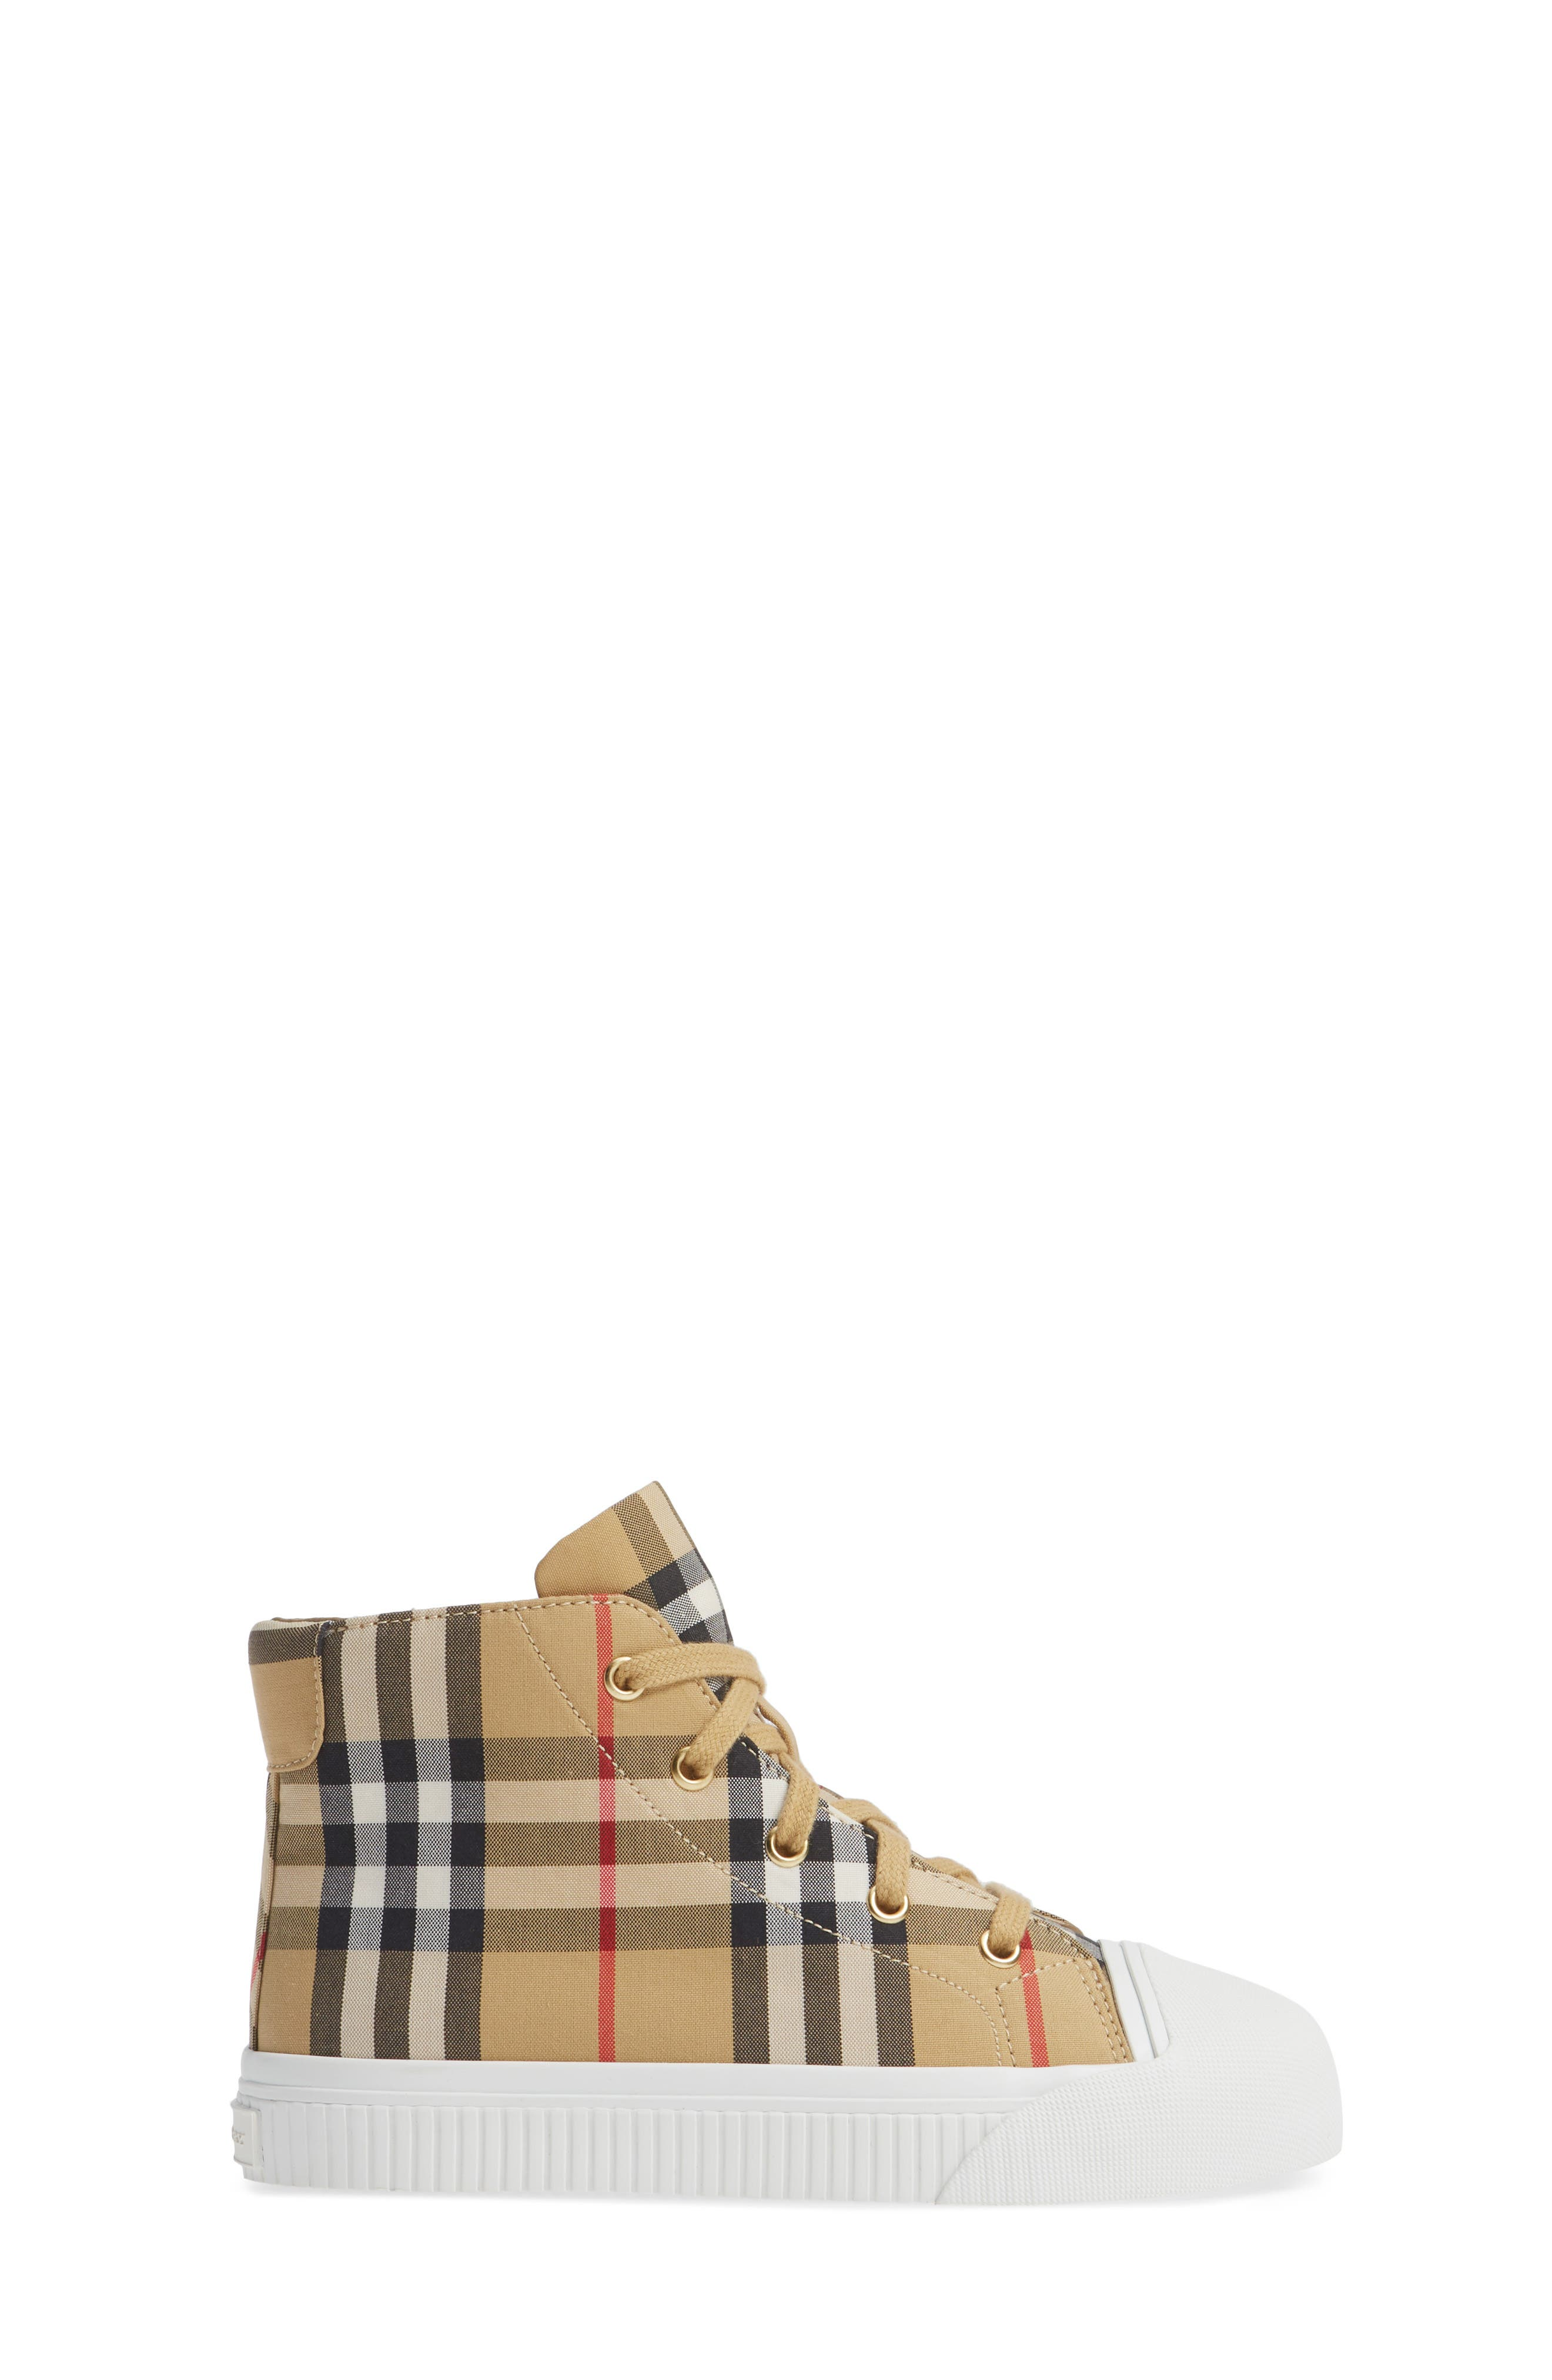 Belford High-Top Sneaker,                             Alternate thumbnail 3, color,                             ANTIQUE YELLOW/ OPTIC WHITE